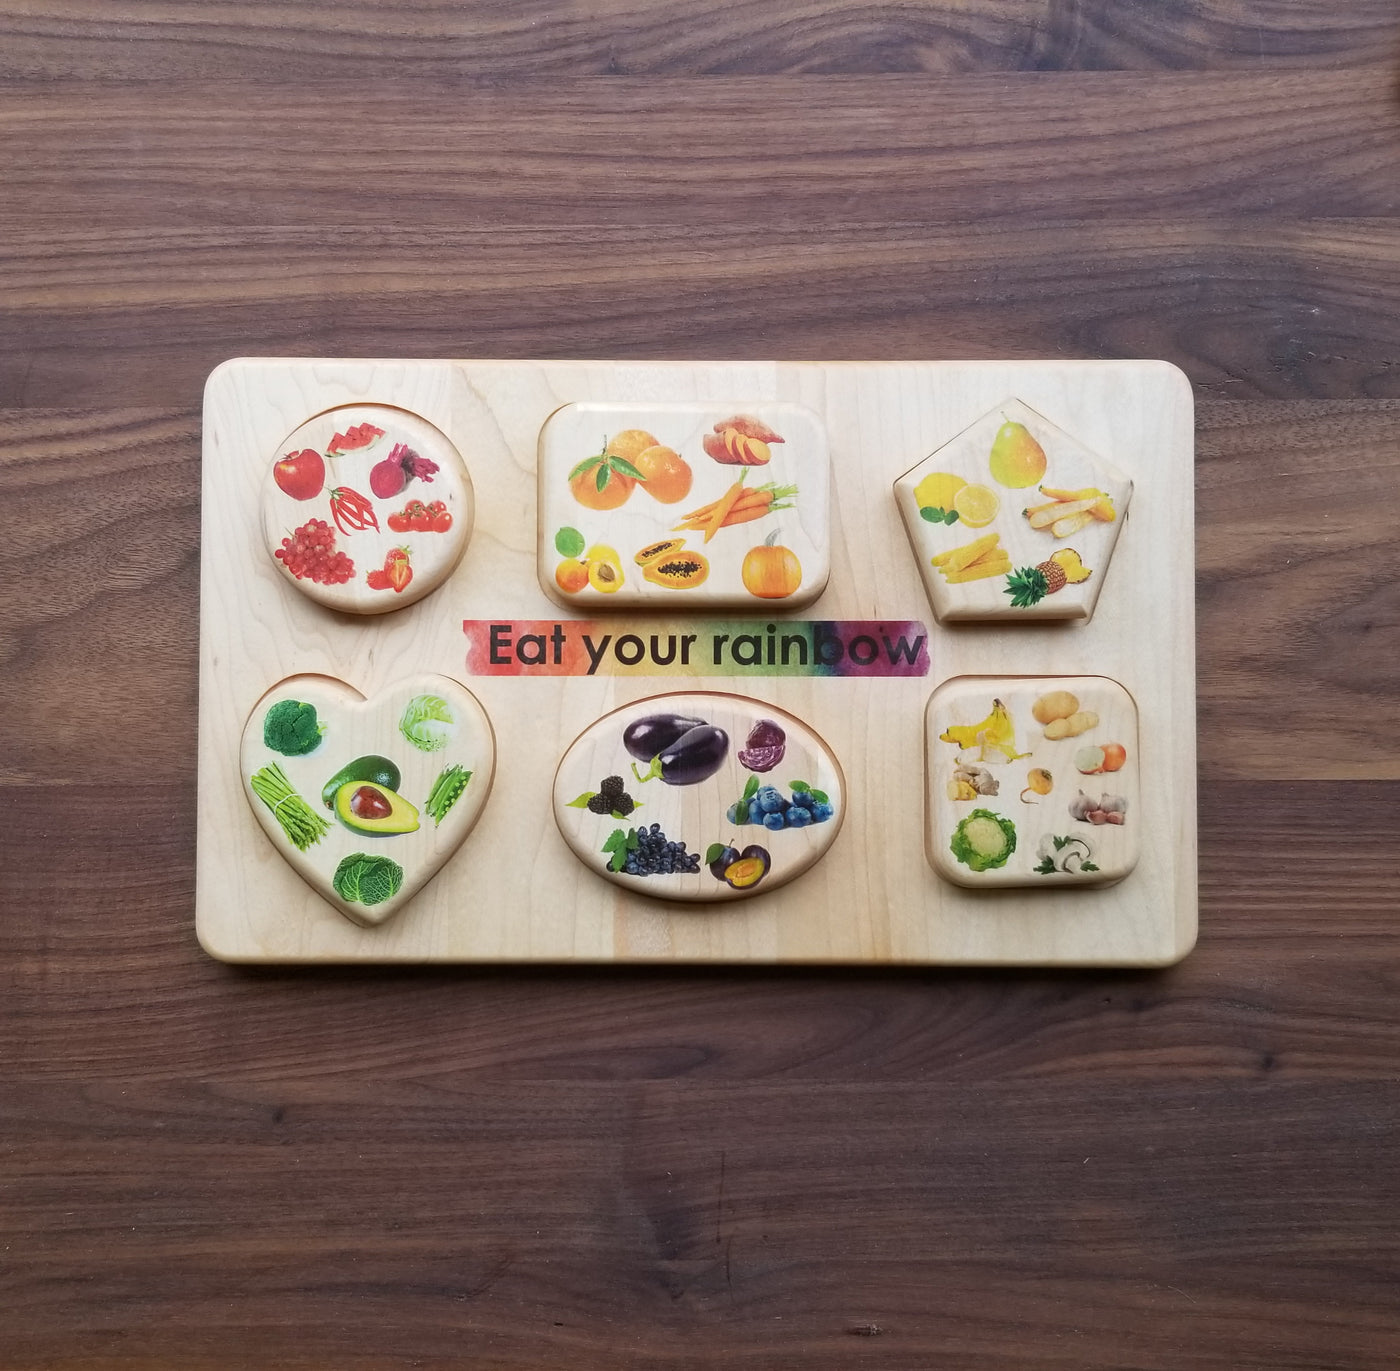 Eat your rainbow wooden puzzle - healthy eating puzzle - eat your veggies - healthy eating - Montessori materials - practical life